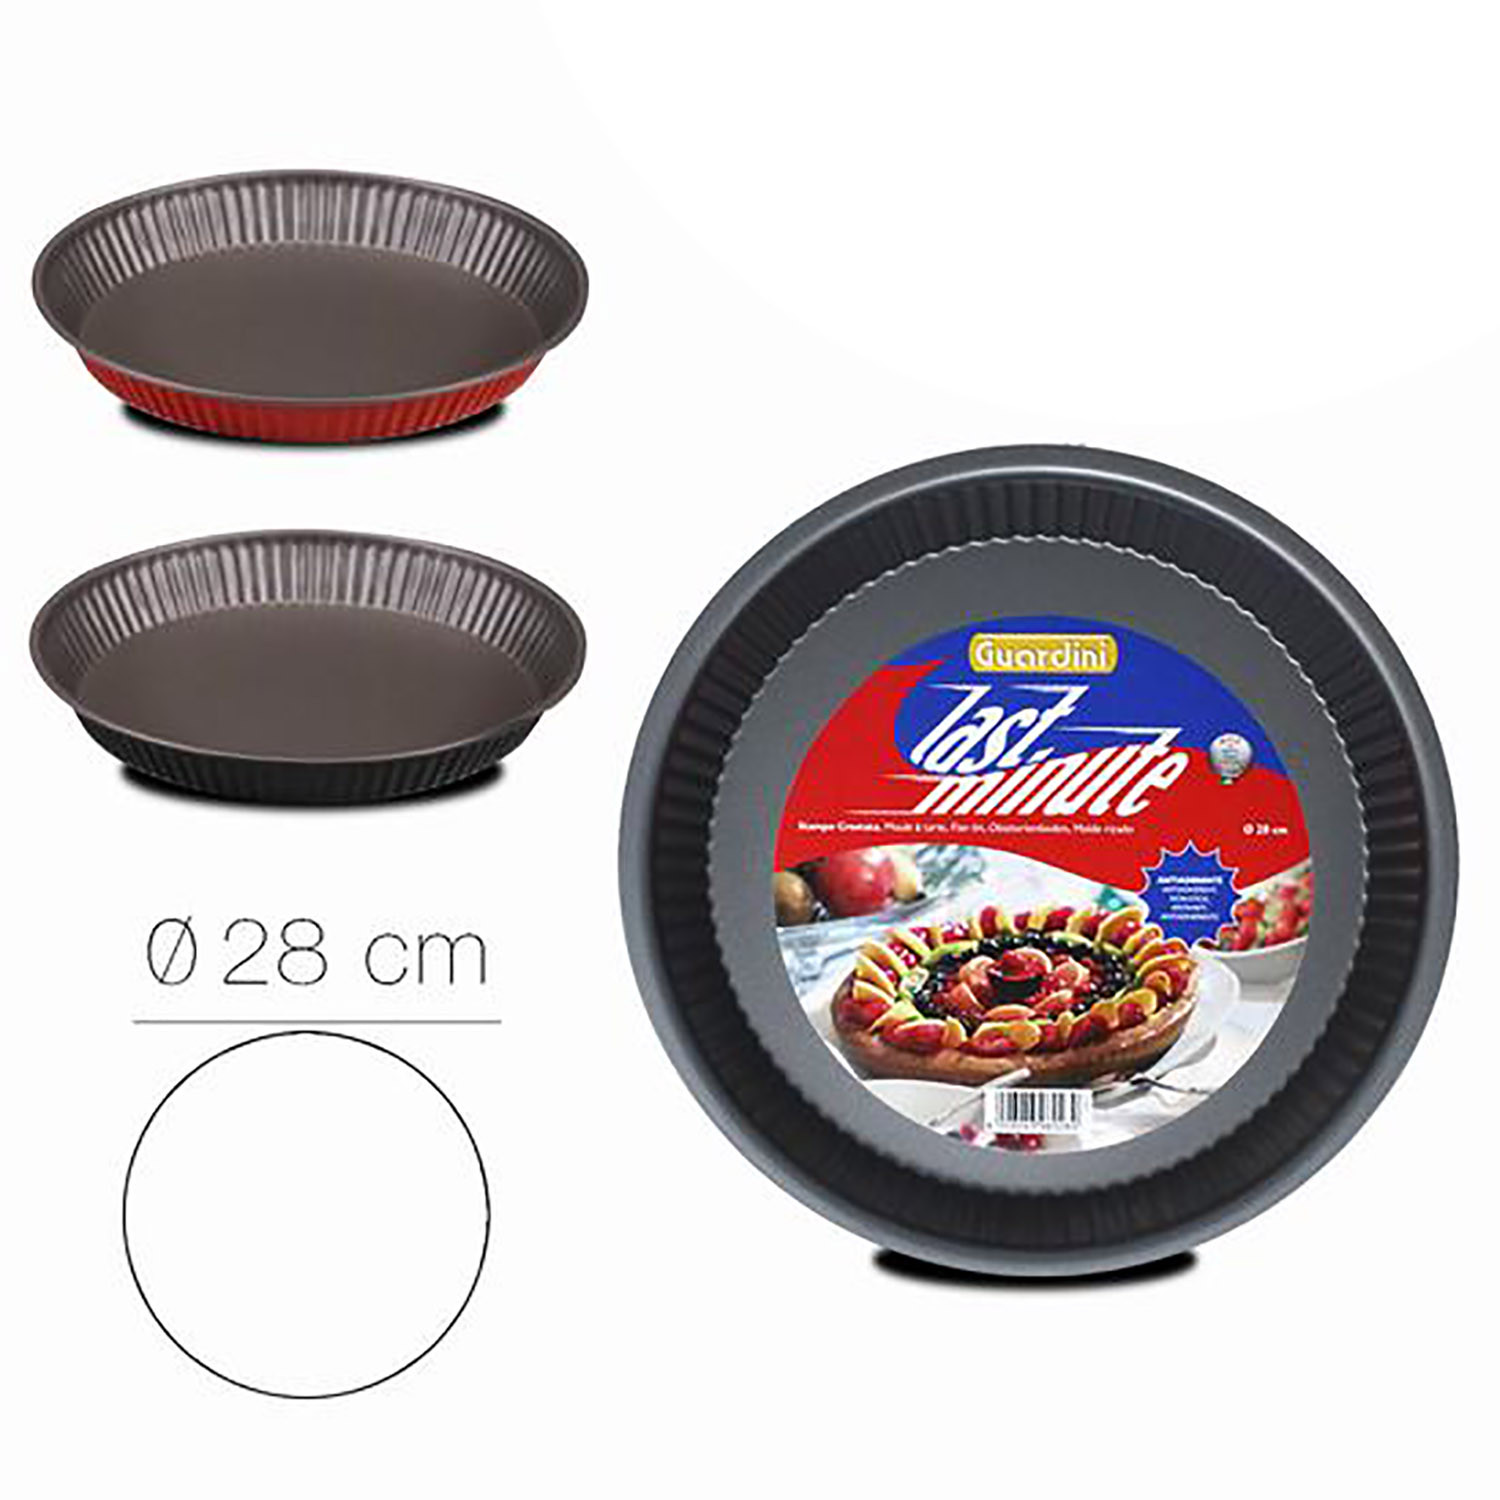 Mold Cake baking, Moulds for Cakes non-Stick, Cast Circular Ripple, 4x28cm